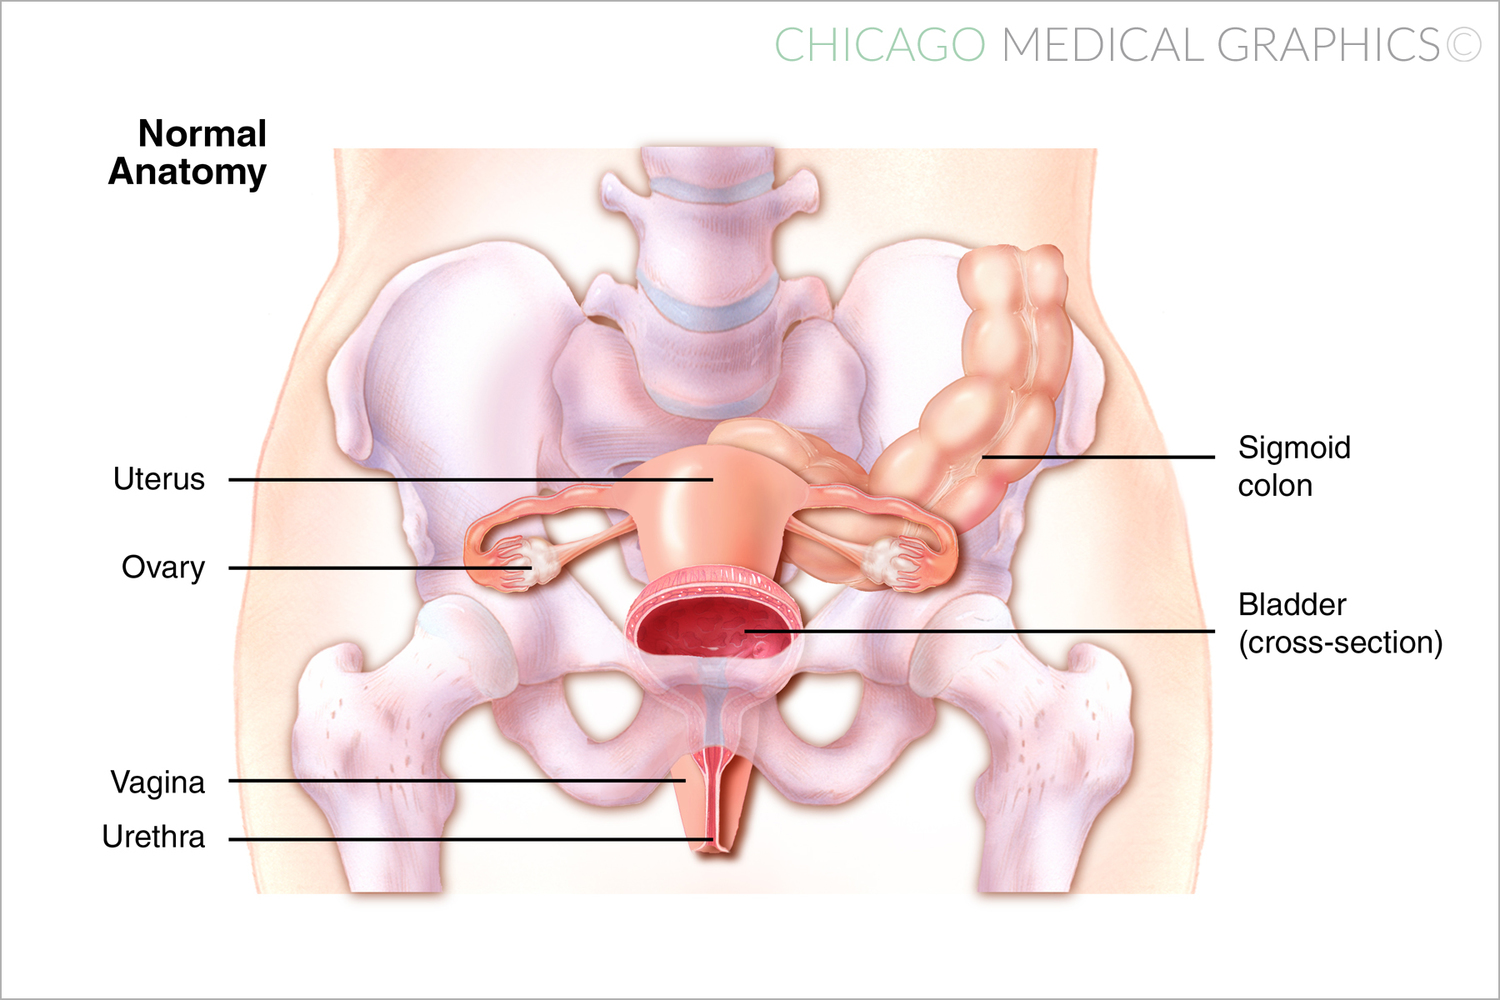 Pelvic Gunshot case — Chicago Medical Graphics